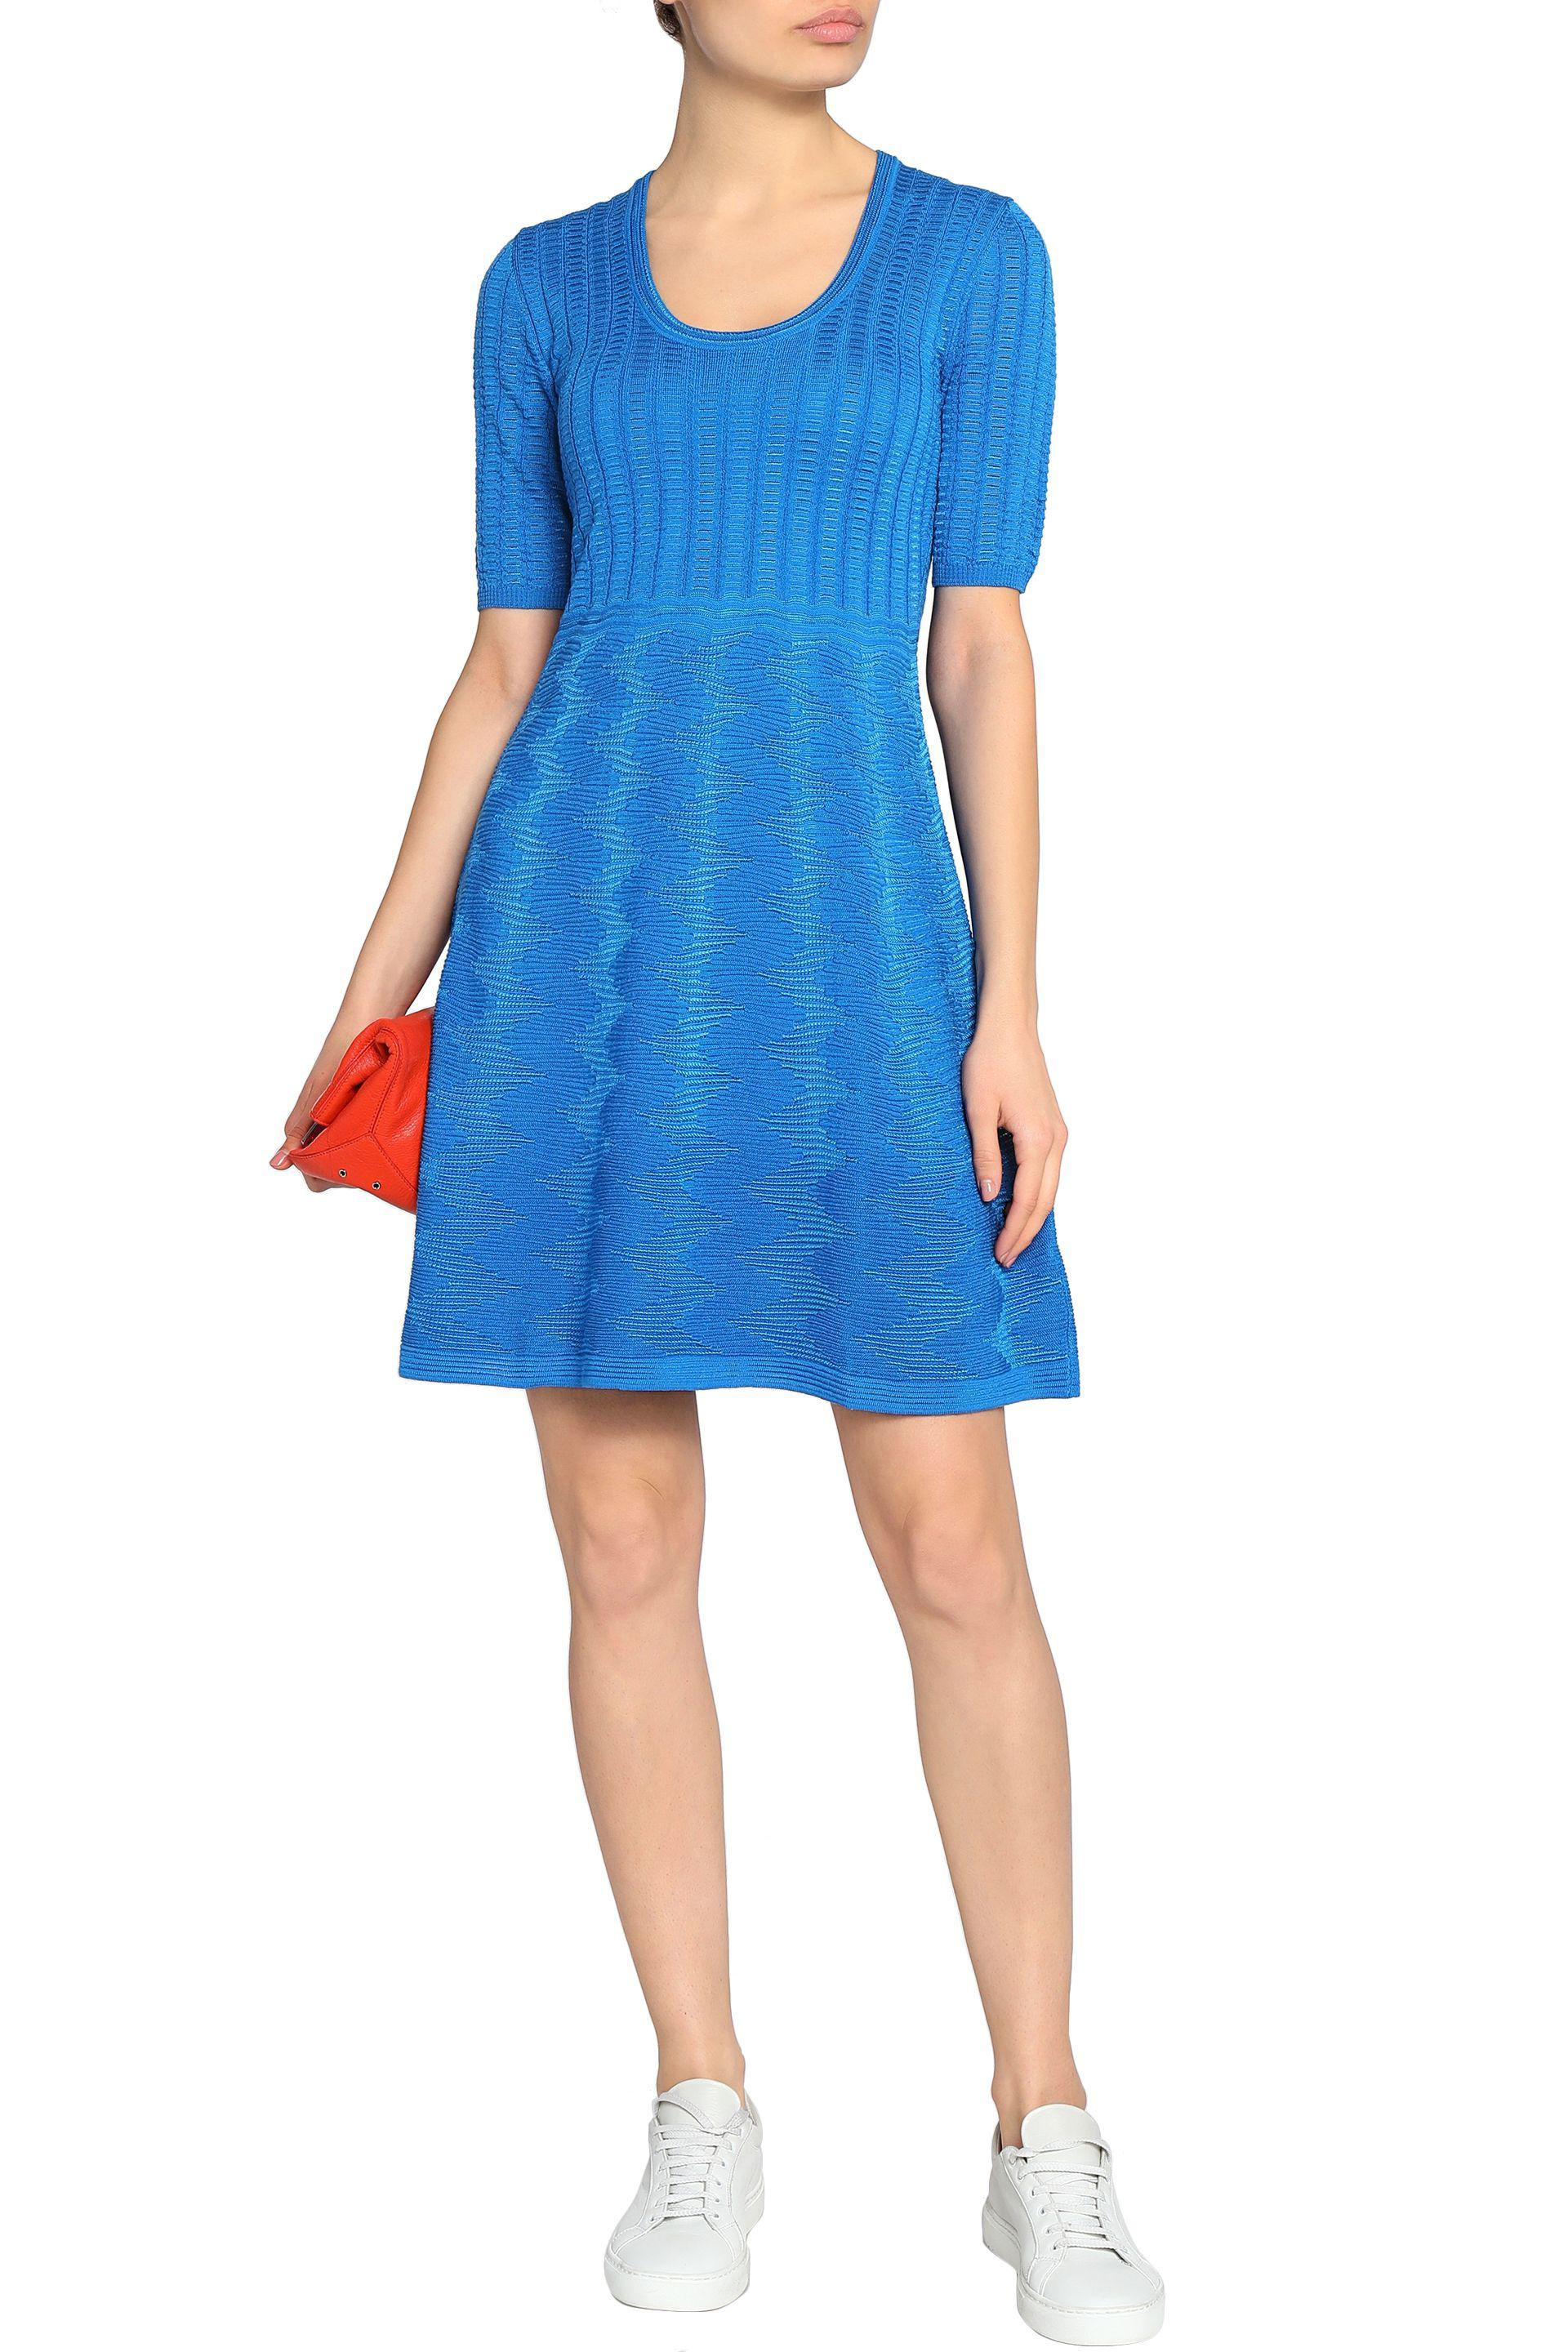 M Missoni - Blue Crochet-knit Wool-blend Dress - Lyst. View Fullscreen